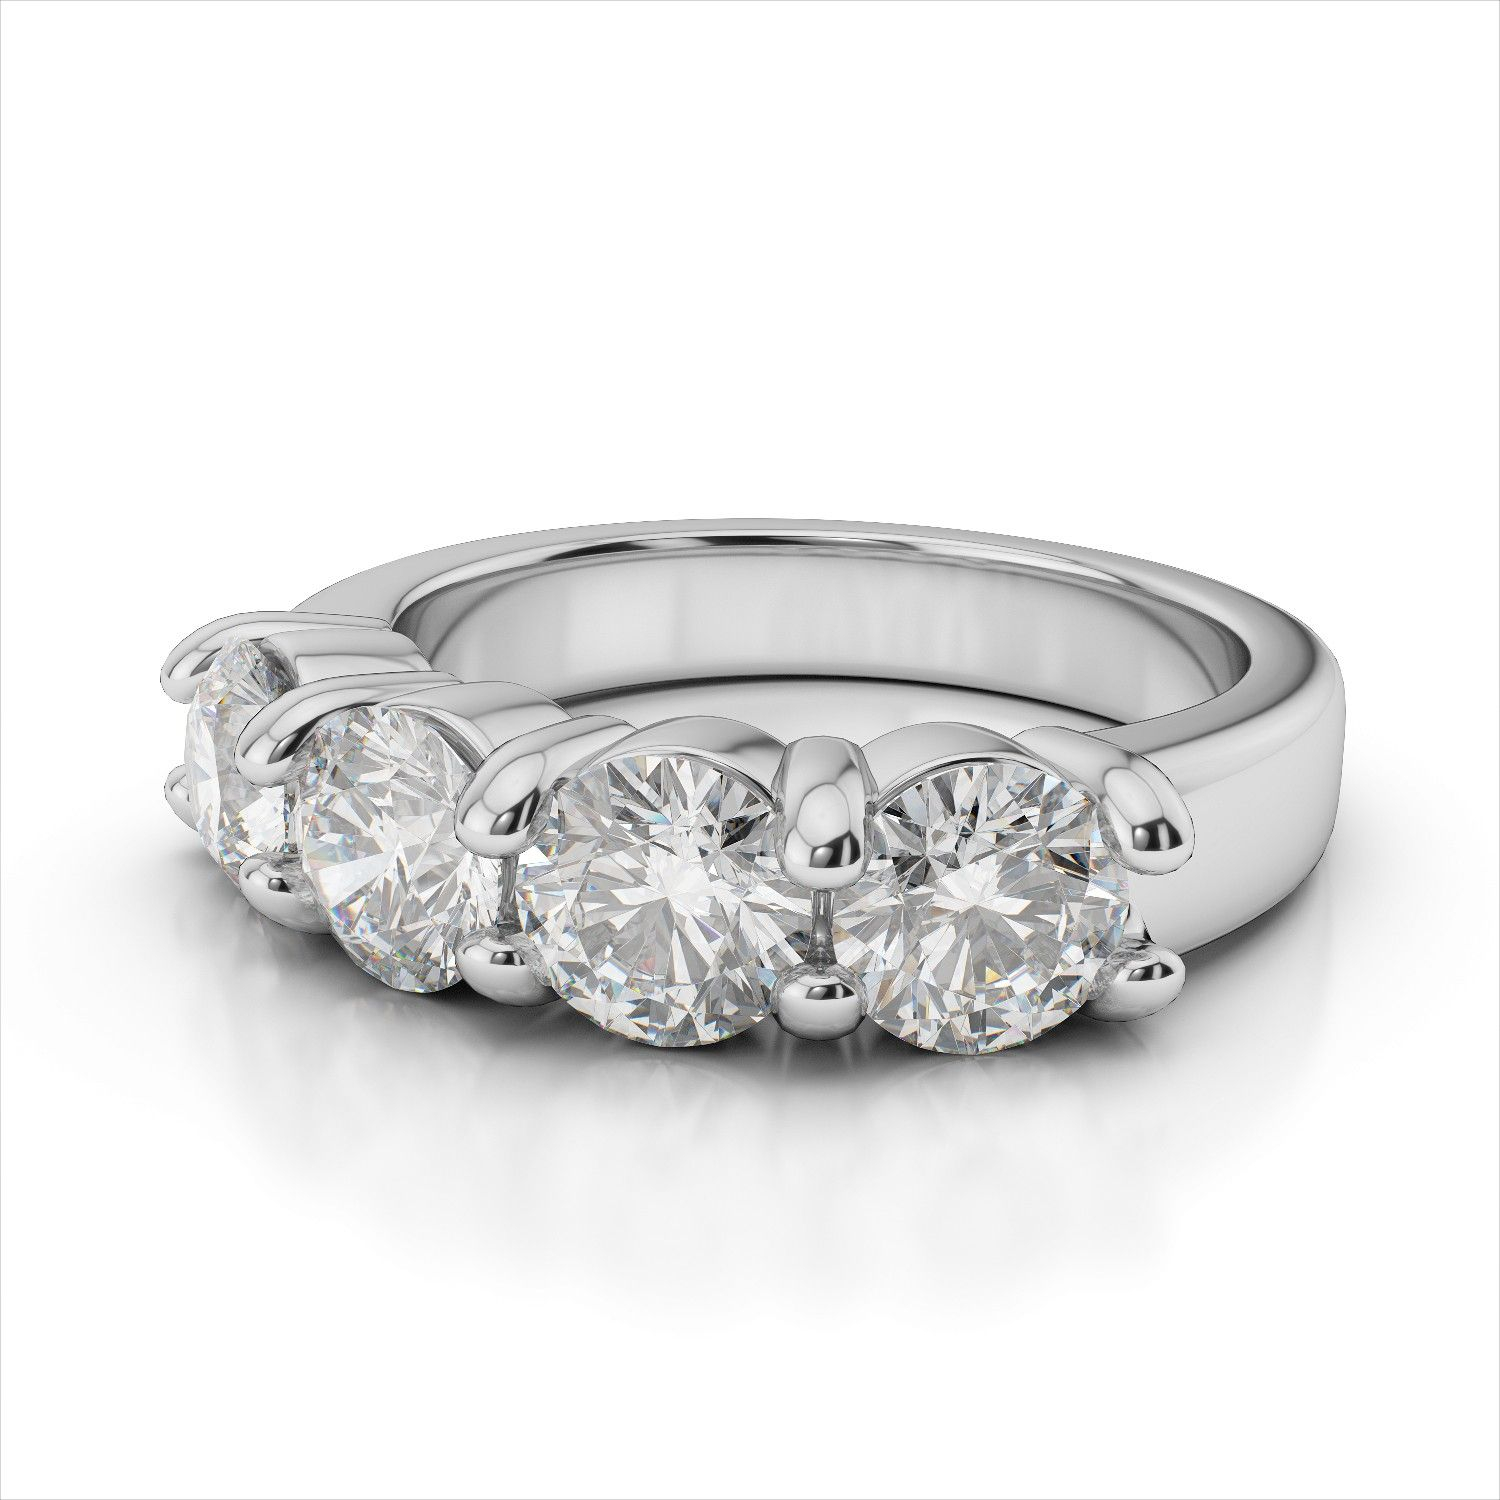 g h princess vs diamond in anniversary ring platinum bands band cut eternity